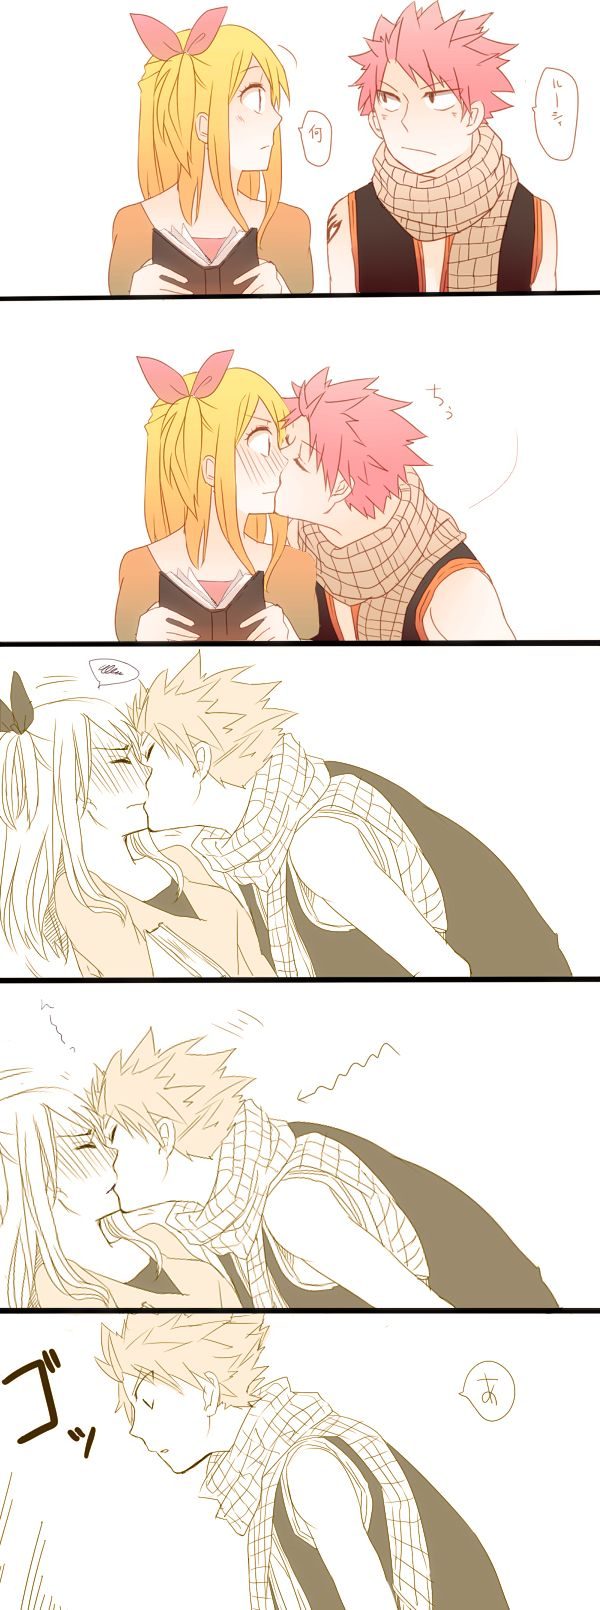 Miyake Achi, Pixiv Id 6163717, FAIRY TAIL, Lucy Heartfilia, Natsu Dragneel, Kiss On The Lips